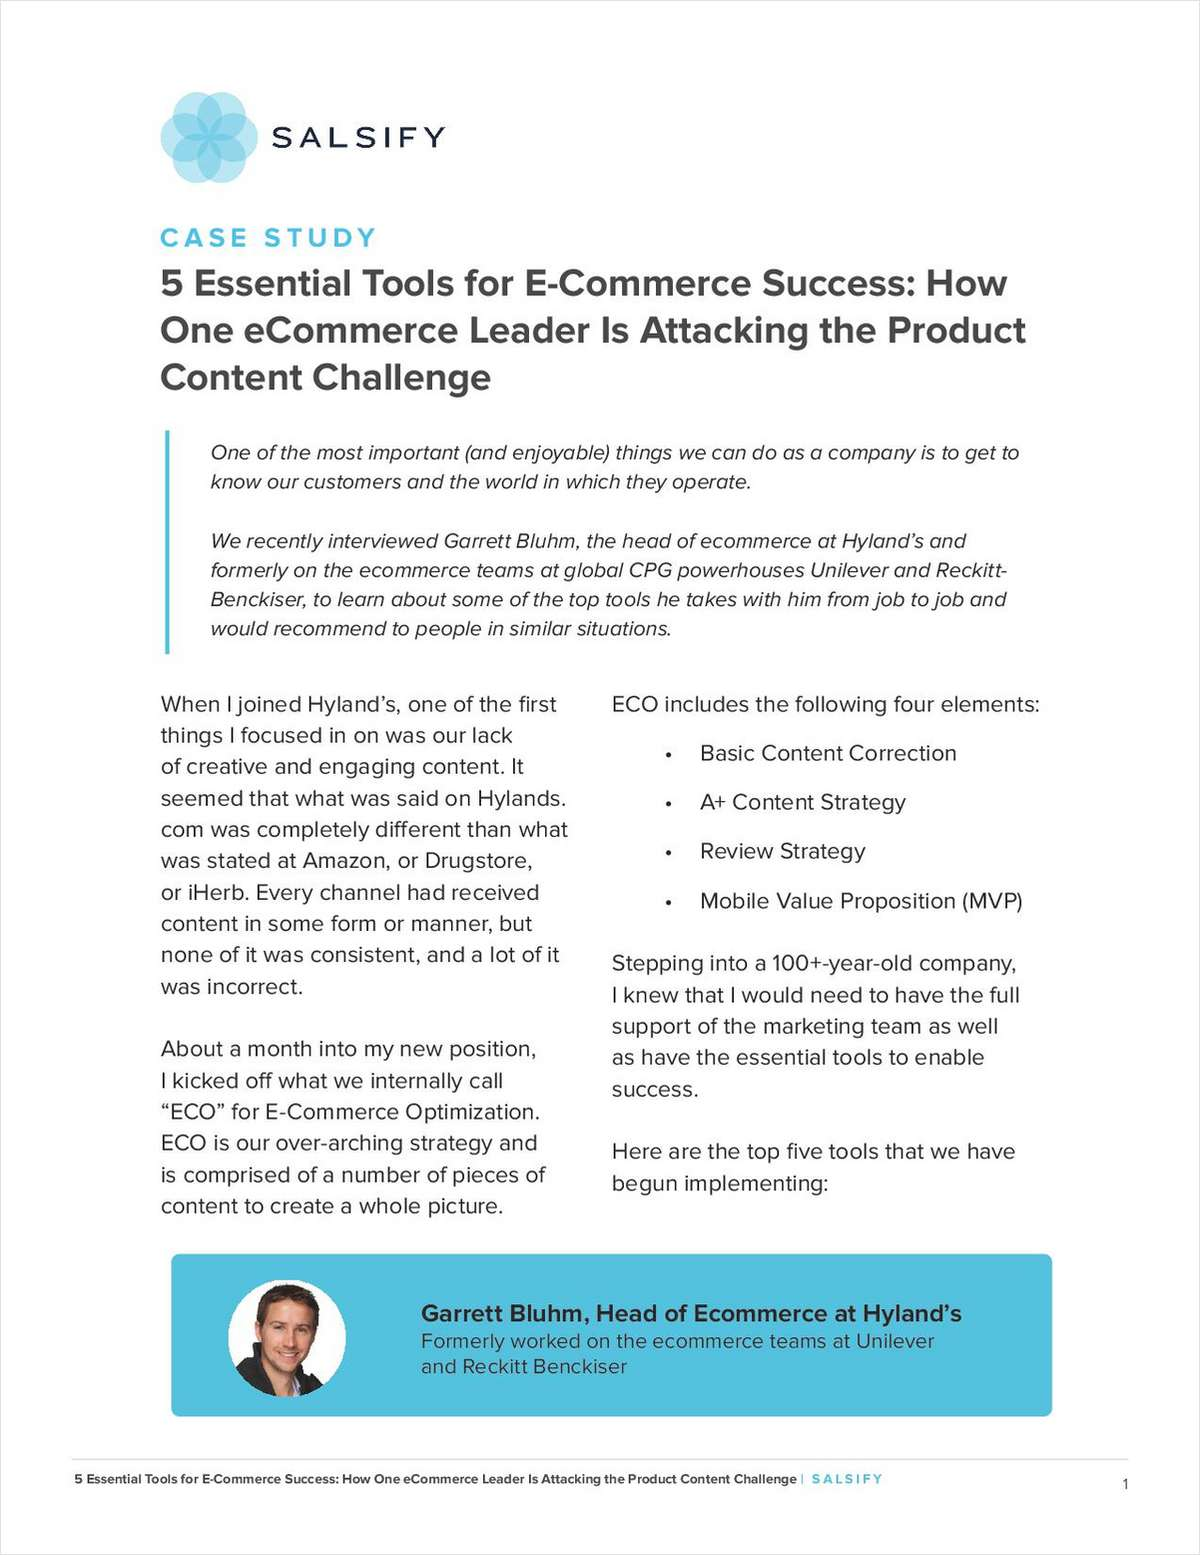 Attacking the Product Content Challenge: 5 Essential Tools for Hyland's E-commerce Success